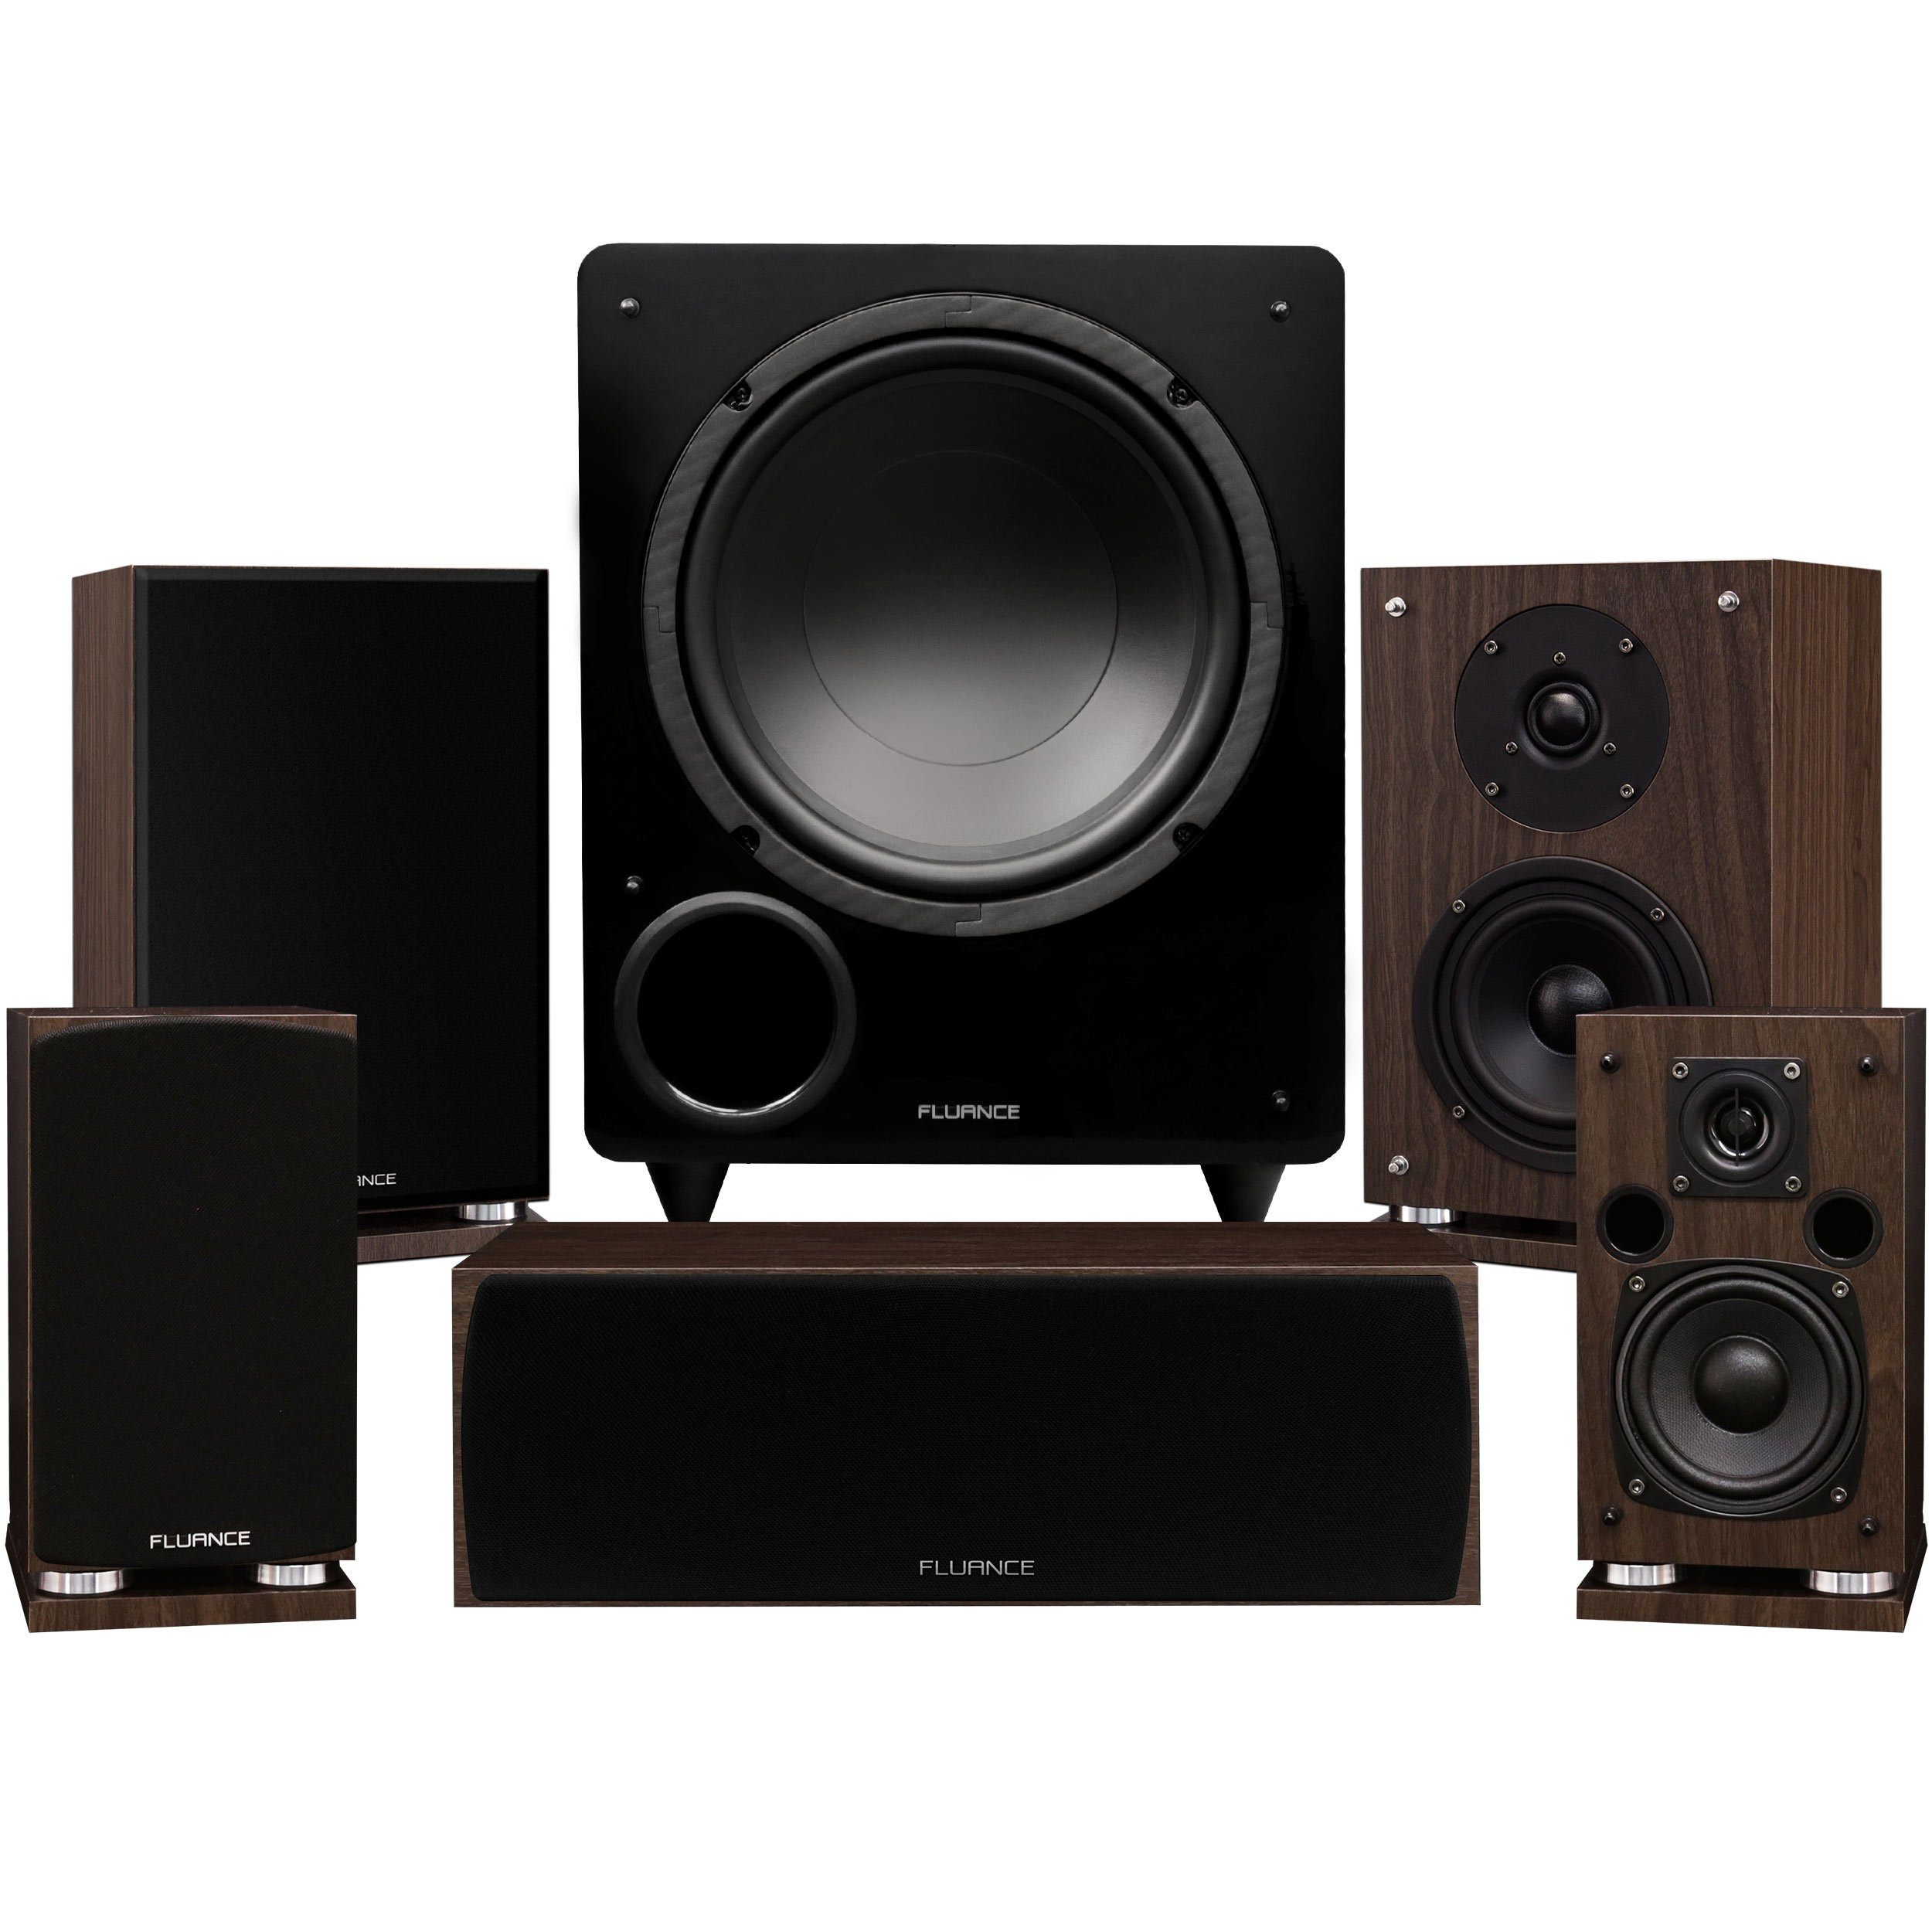 Fluance Elite Series Compact Surround Sound Home Theater 5.1 Channel Speaker System Including Two-Way Bookshelf, Center Channel, Rear Surrounds and a DB10 Subwoofer - Walnut (SX51WC)